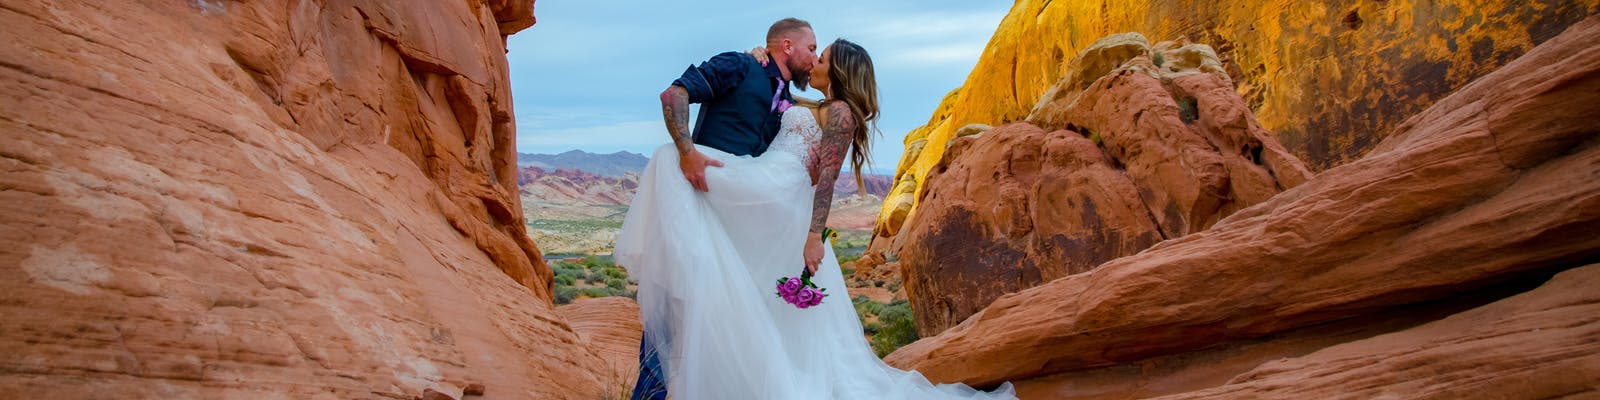 Incredibly colorful sunset wedding at the Valley of Fire